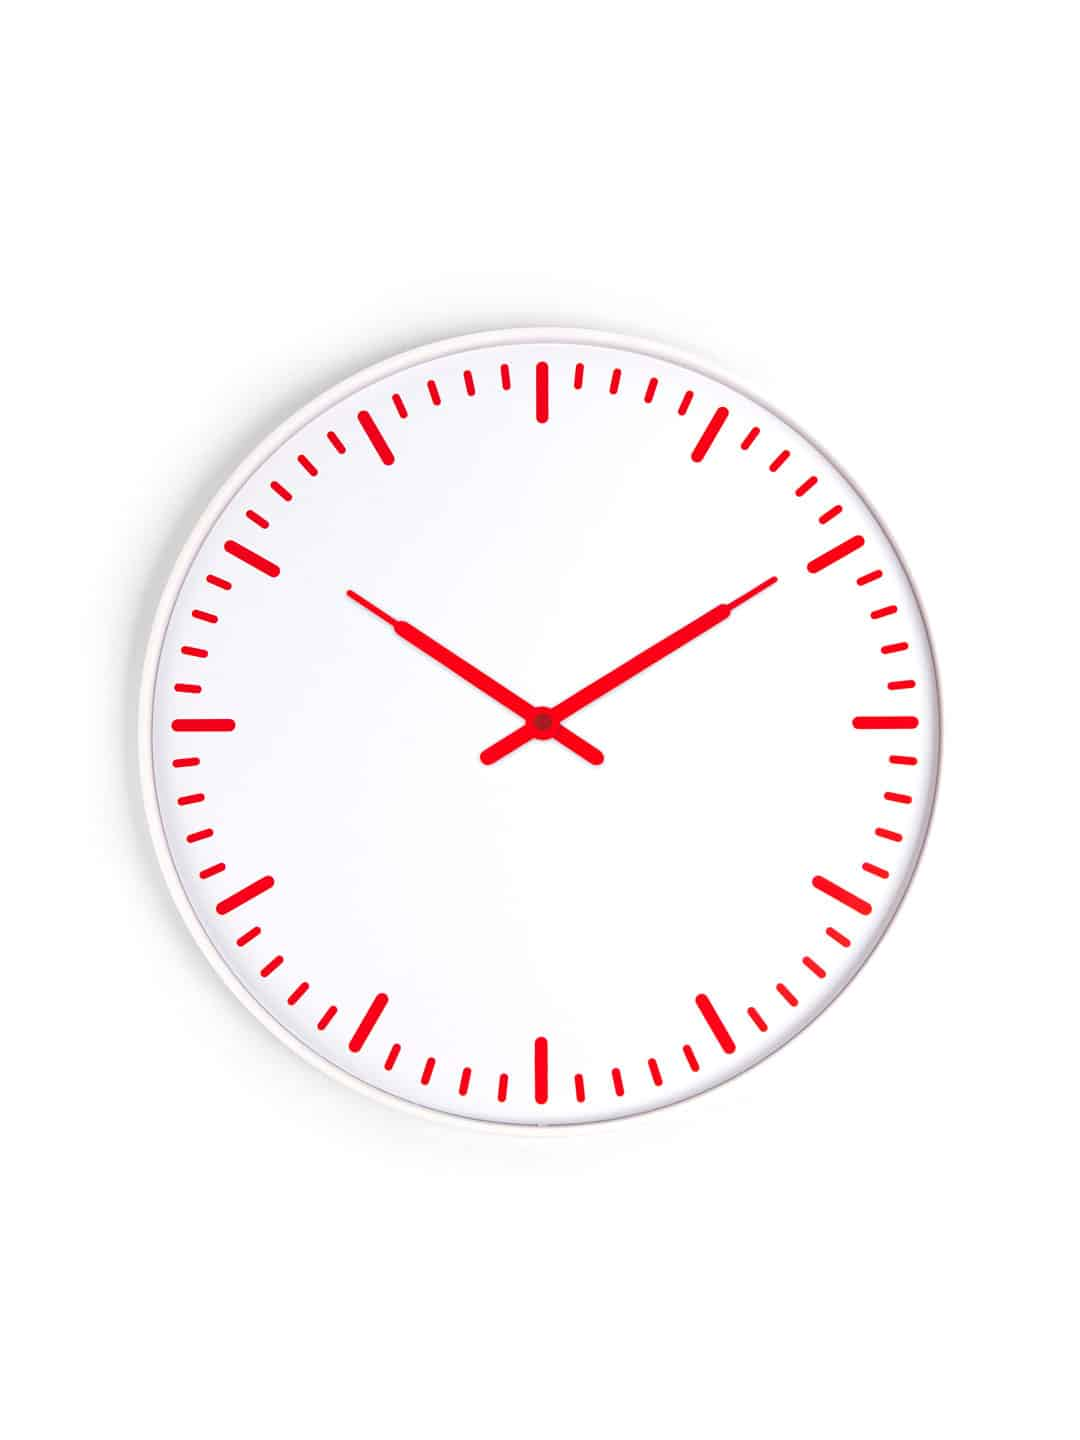 Kikkerland Swiss Station Ultra Flat Wall Clock White and Red Clean Simple Design